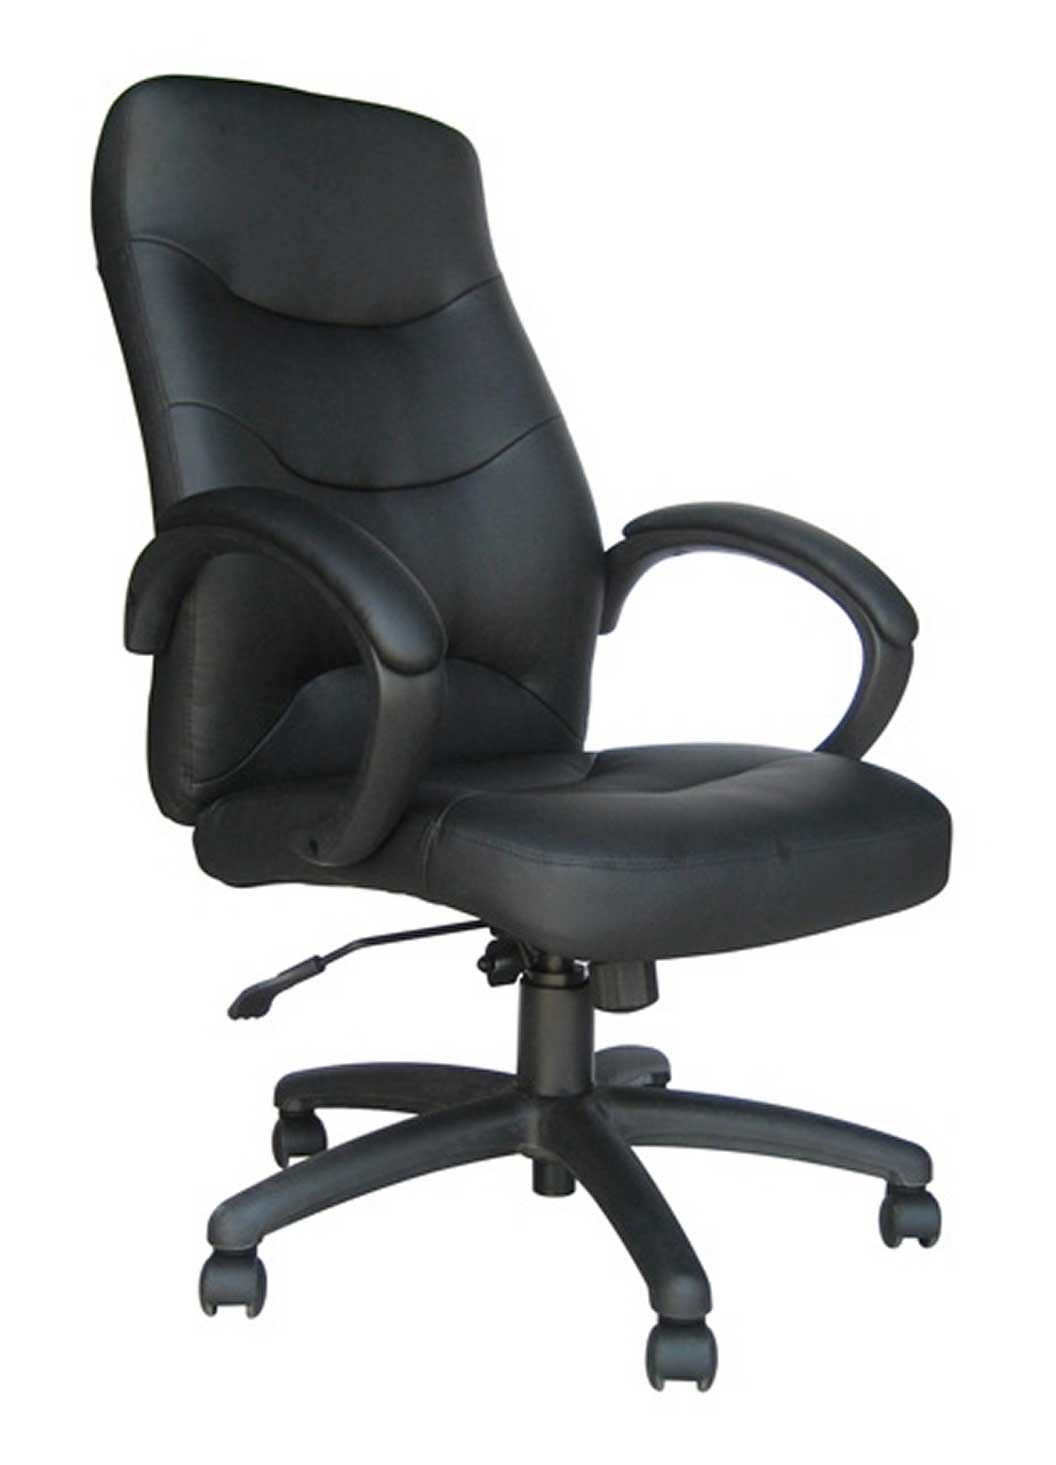 Ergonomic Black leather office chairs